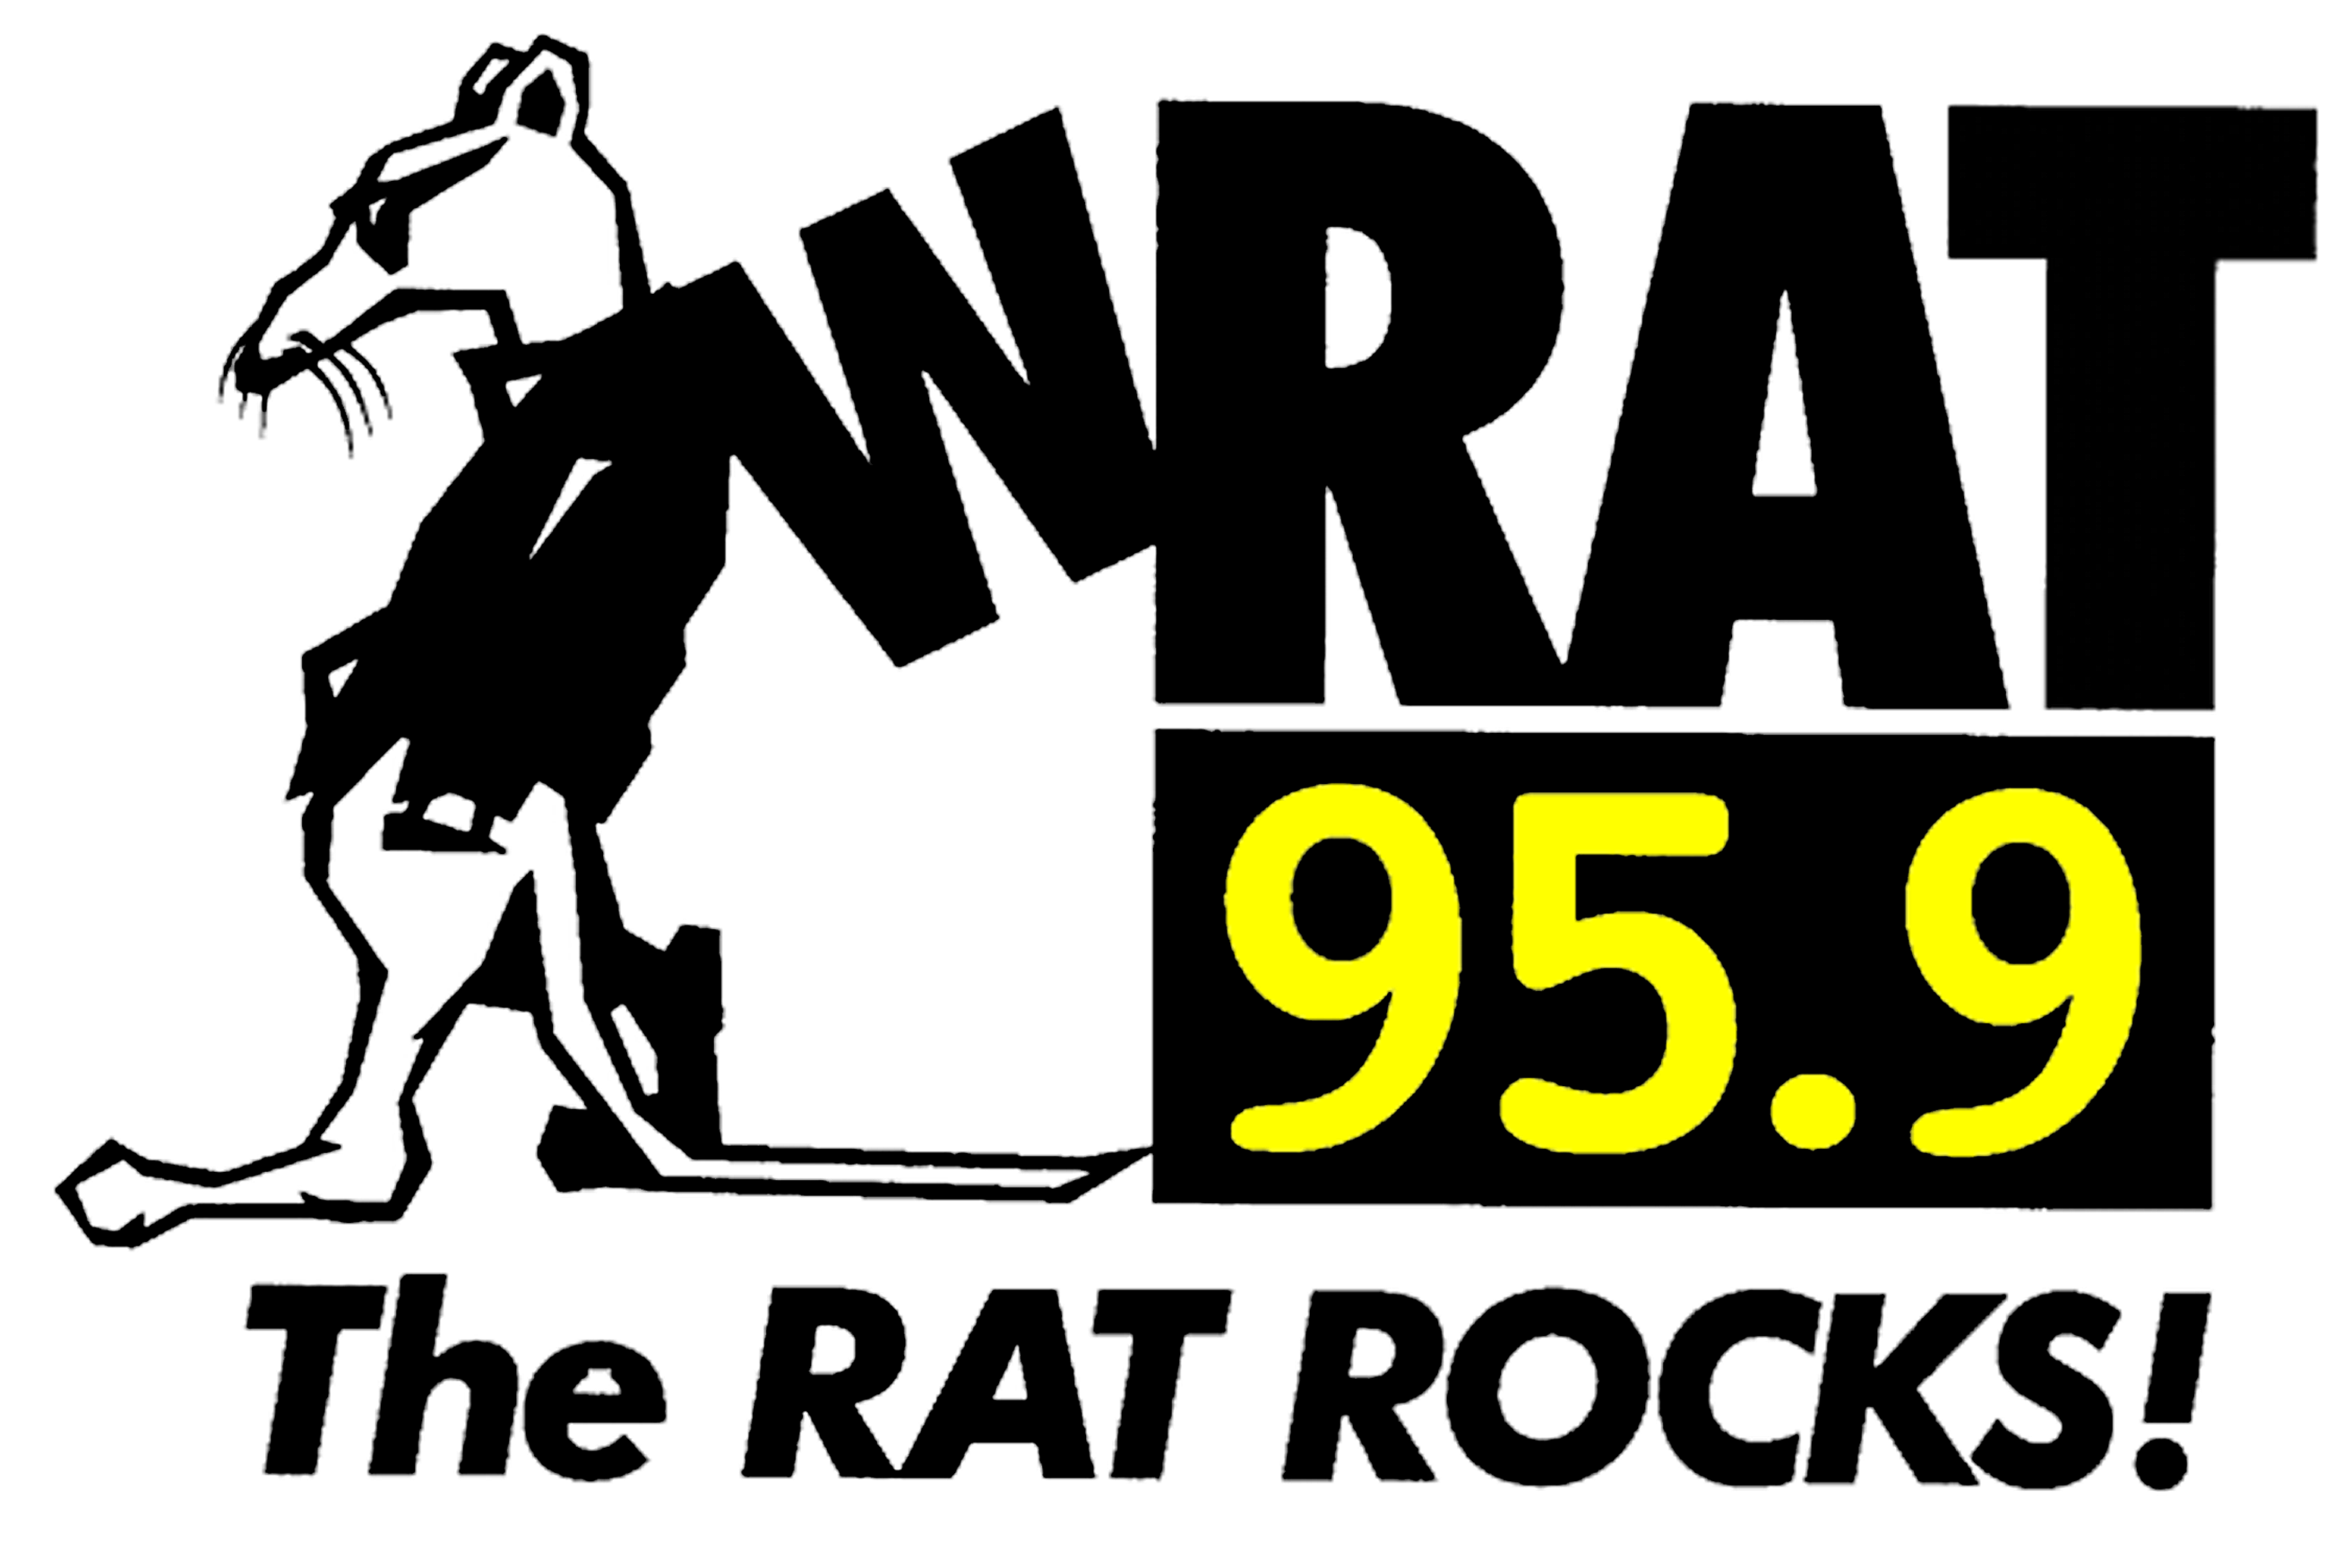 95 9 The RAT  The RAT ROCKS  Maynard James Keenan Tool